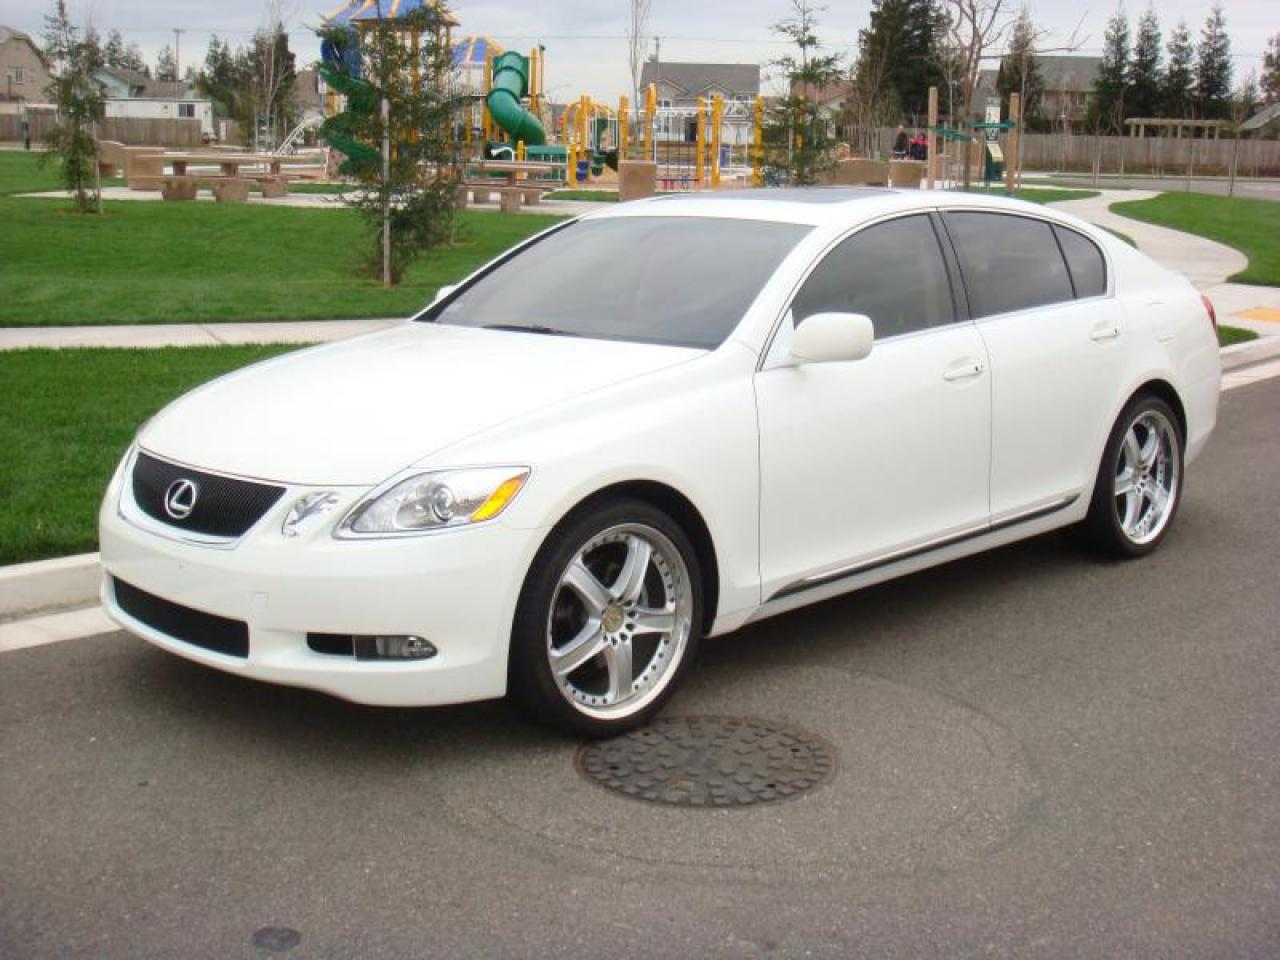 2006 lexus gs 300 information and photos zombiedrive. Black Bedroom Furniture Sets. Home Design Ideas